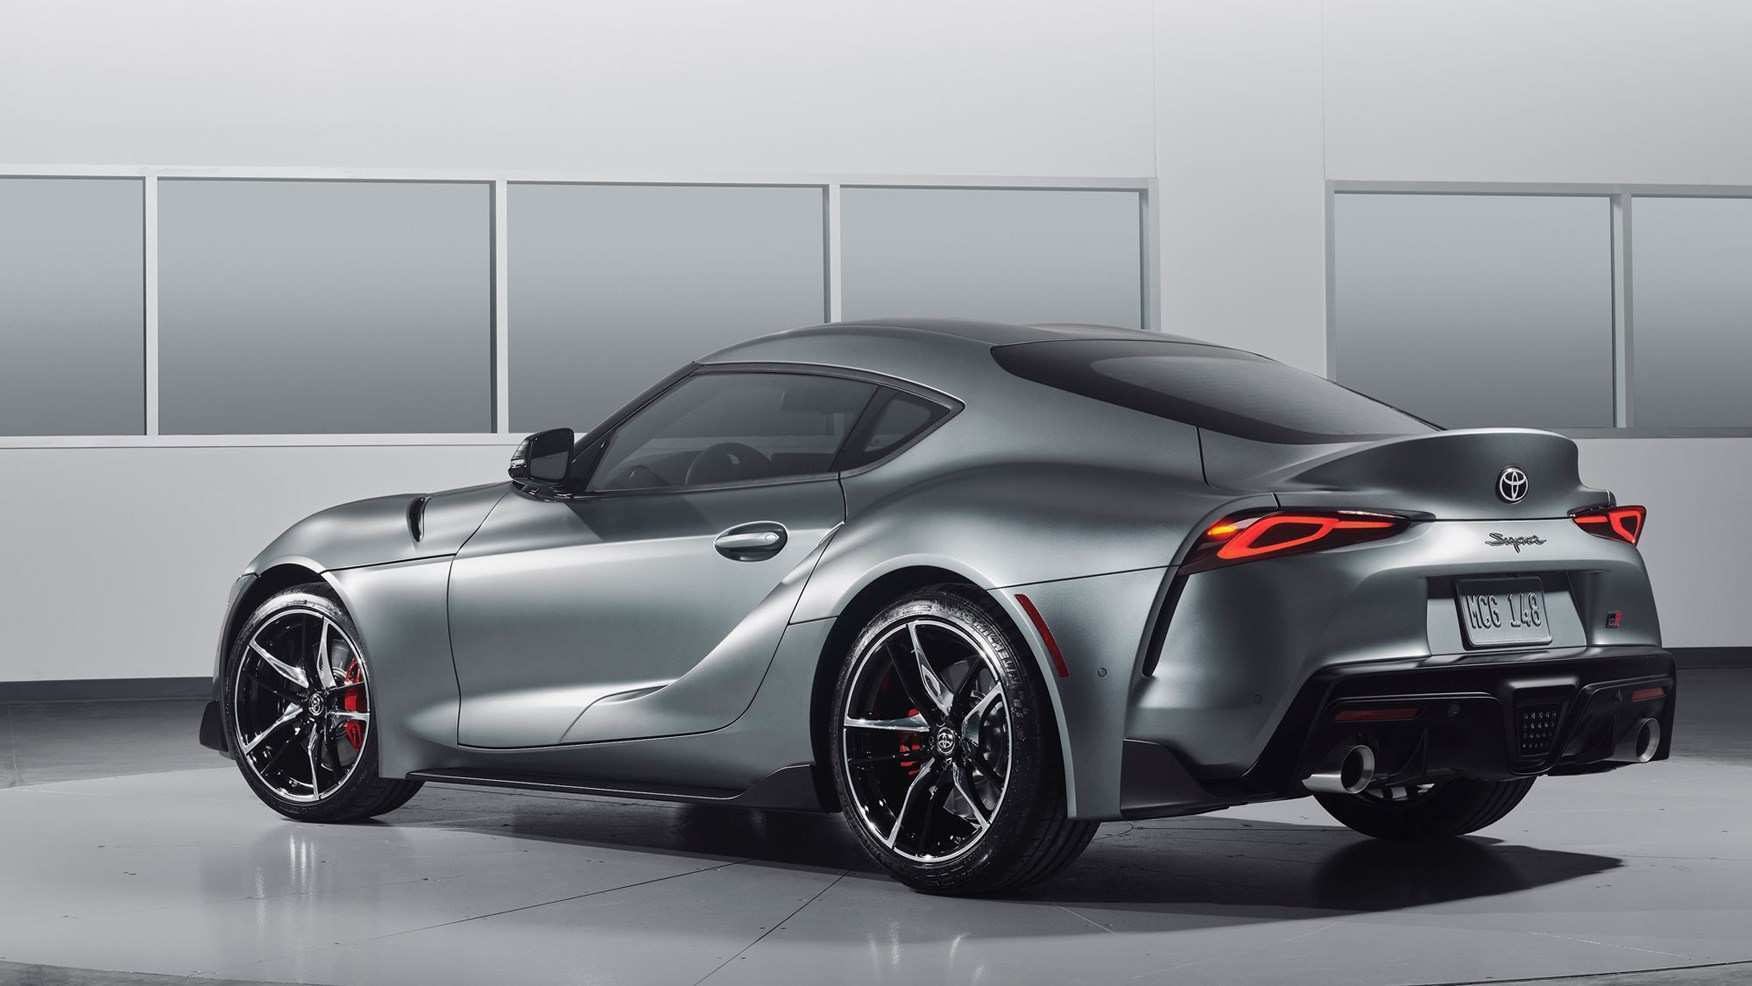 32 Gallery of 2019 Toyota Supra Estimated Price Photos with 2019 Toyota Supra Estimated Price